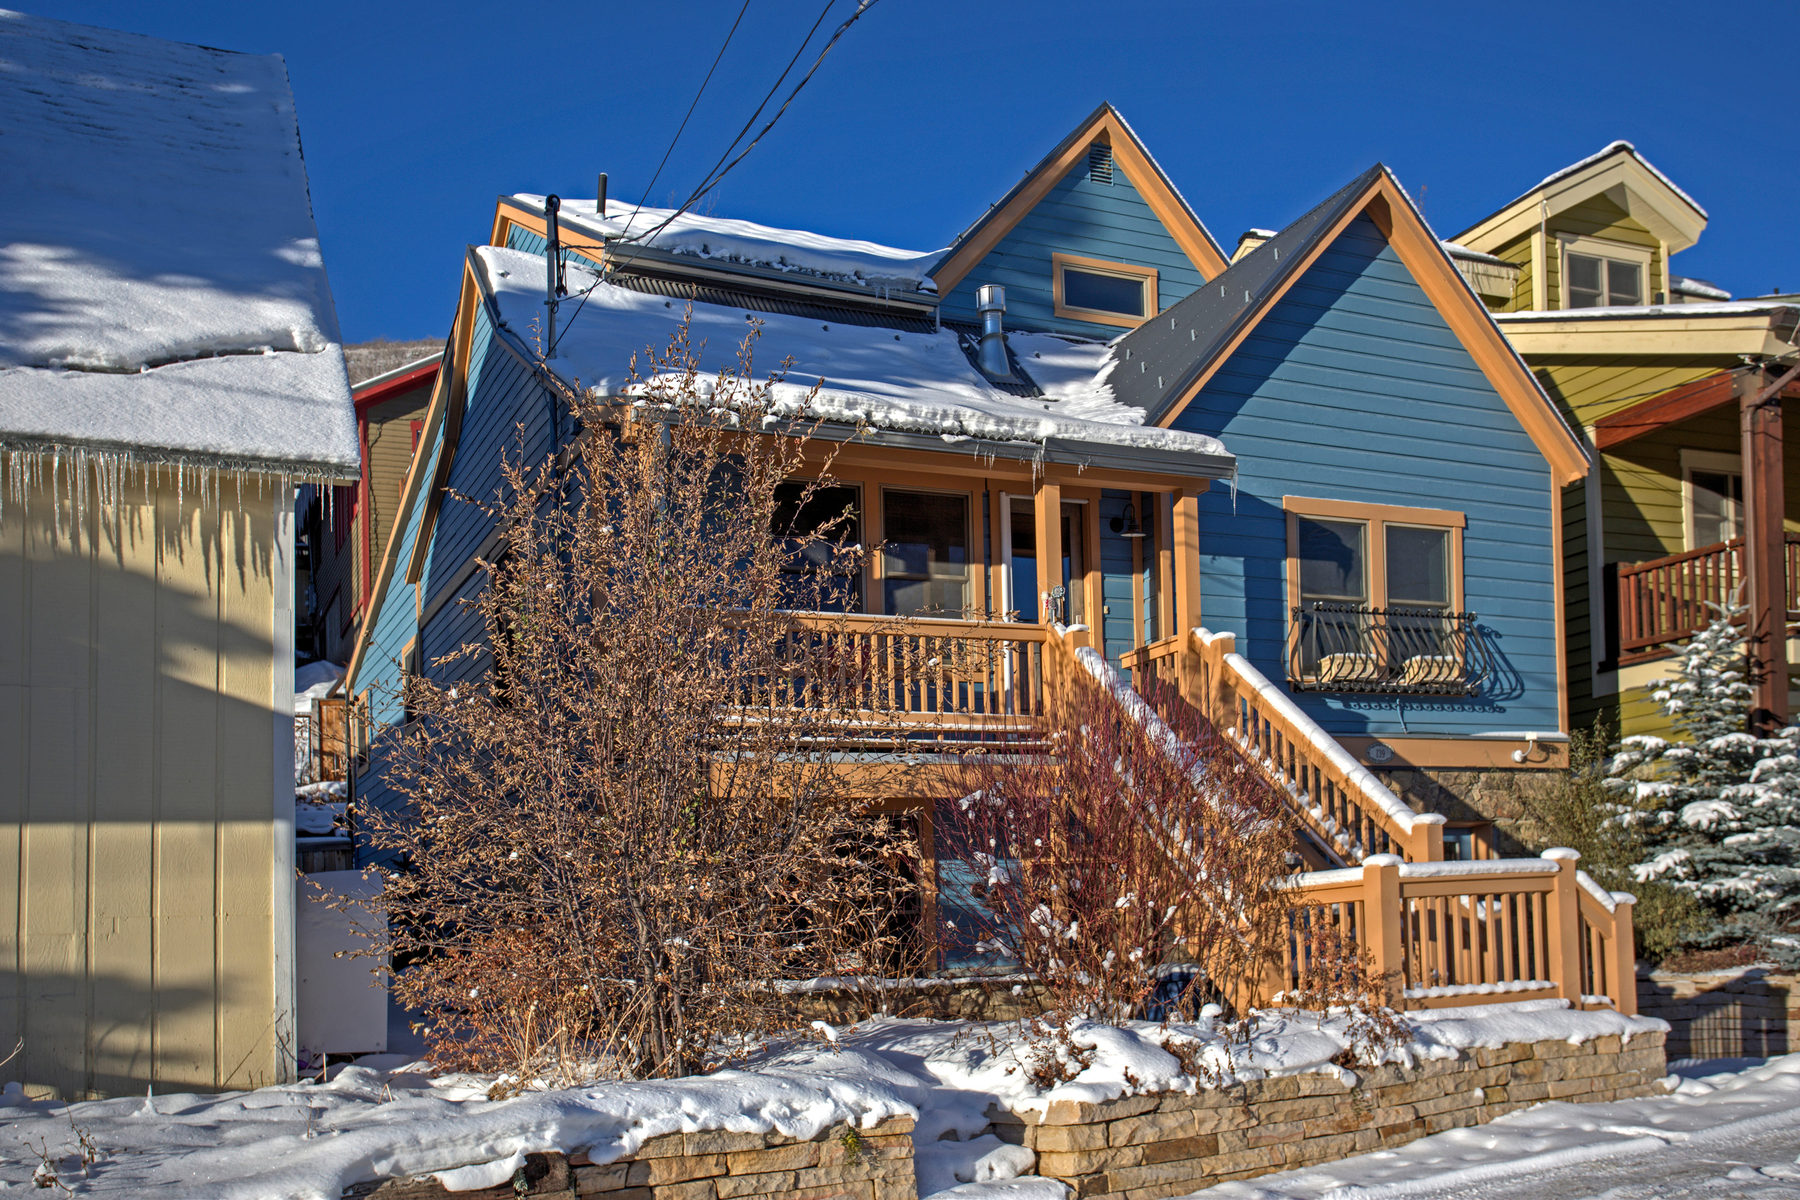 Single Family Home for Sale at Historic Meets Modern 139 Woodside Ave Park City, Utah 84060 United States